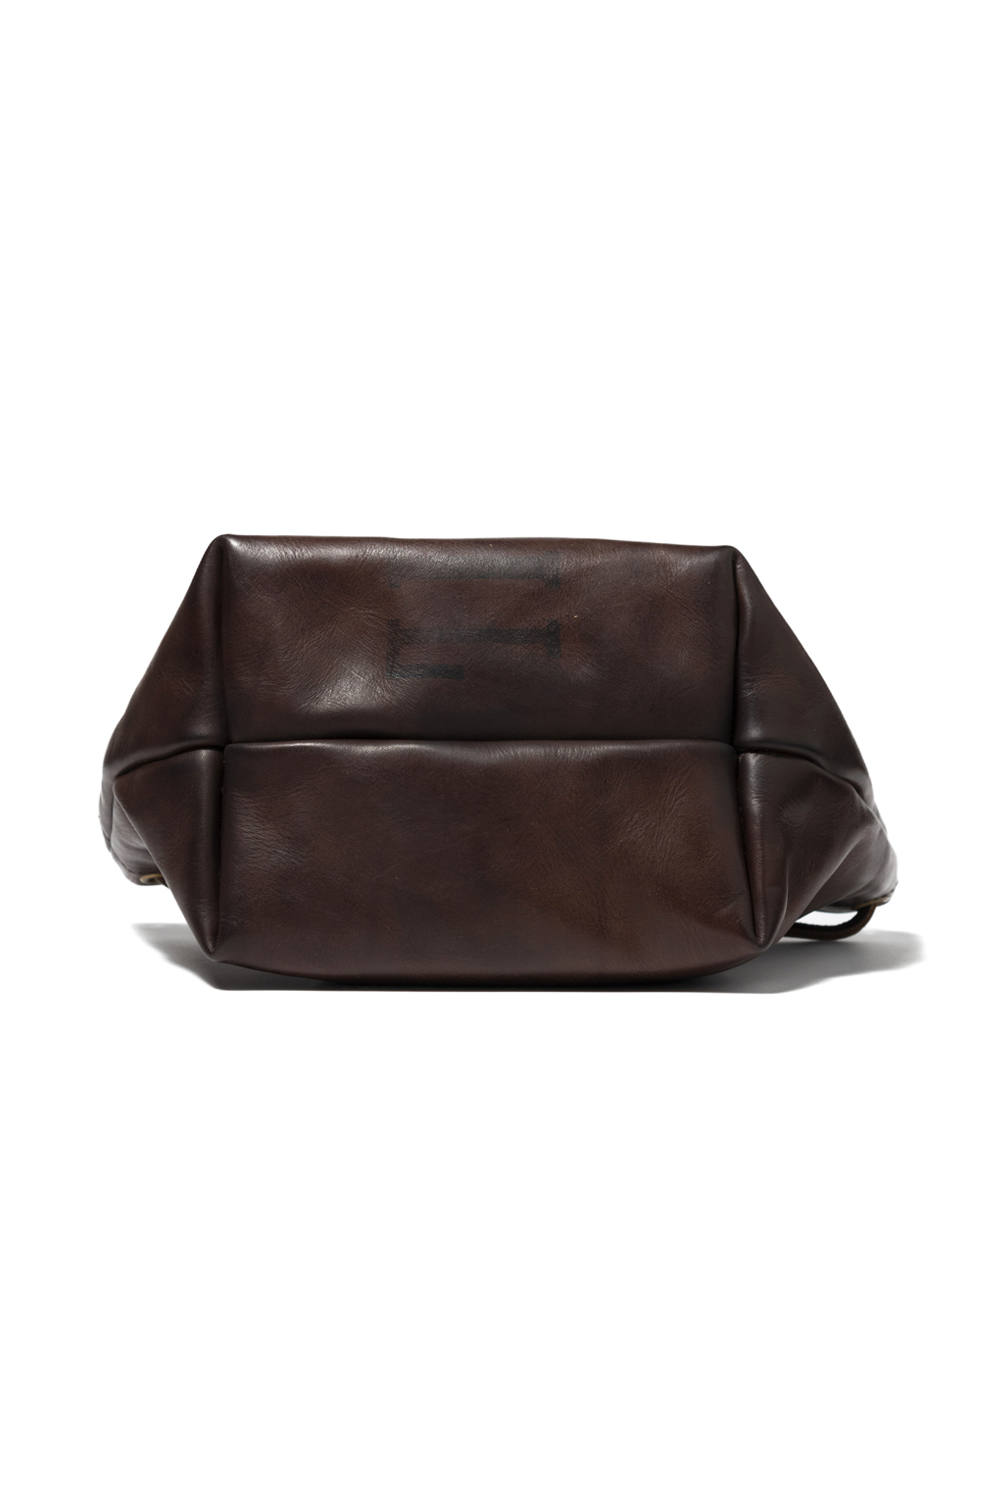 【20AW】レザーメールパースバッグ-スモール [ブラウン] / LEATHER MAIL PURSE BAG-SMALL [BROWN]